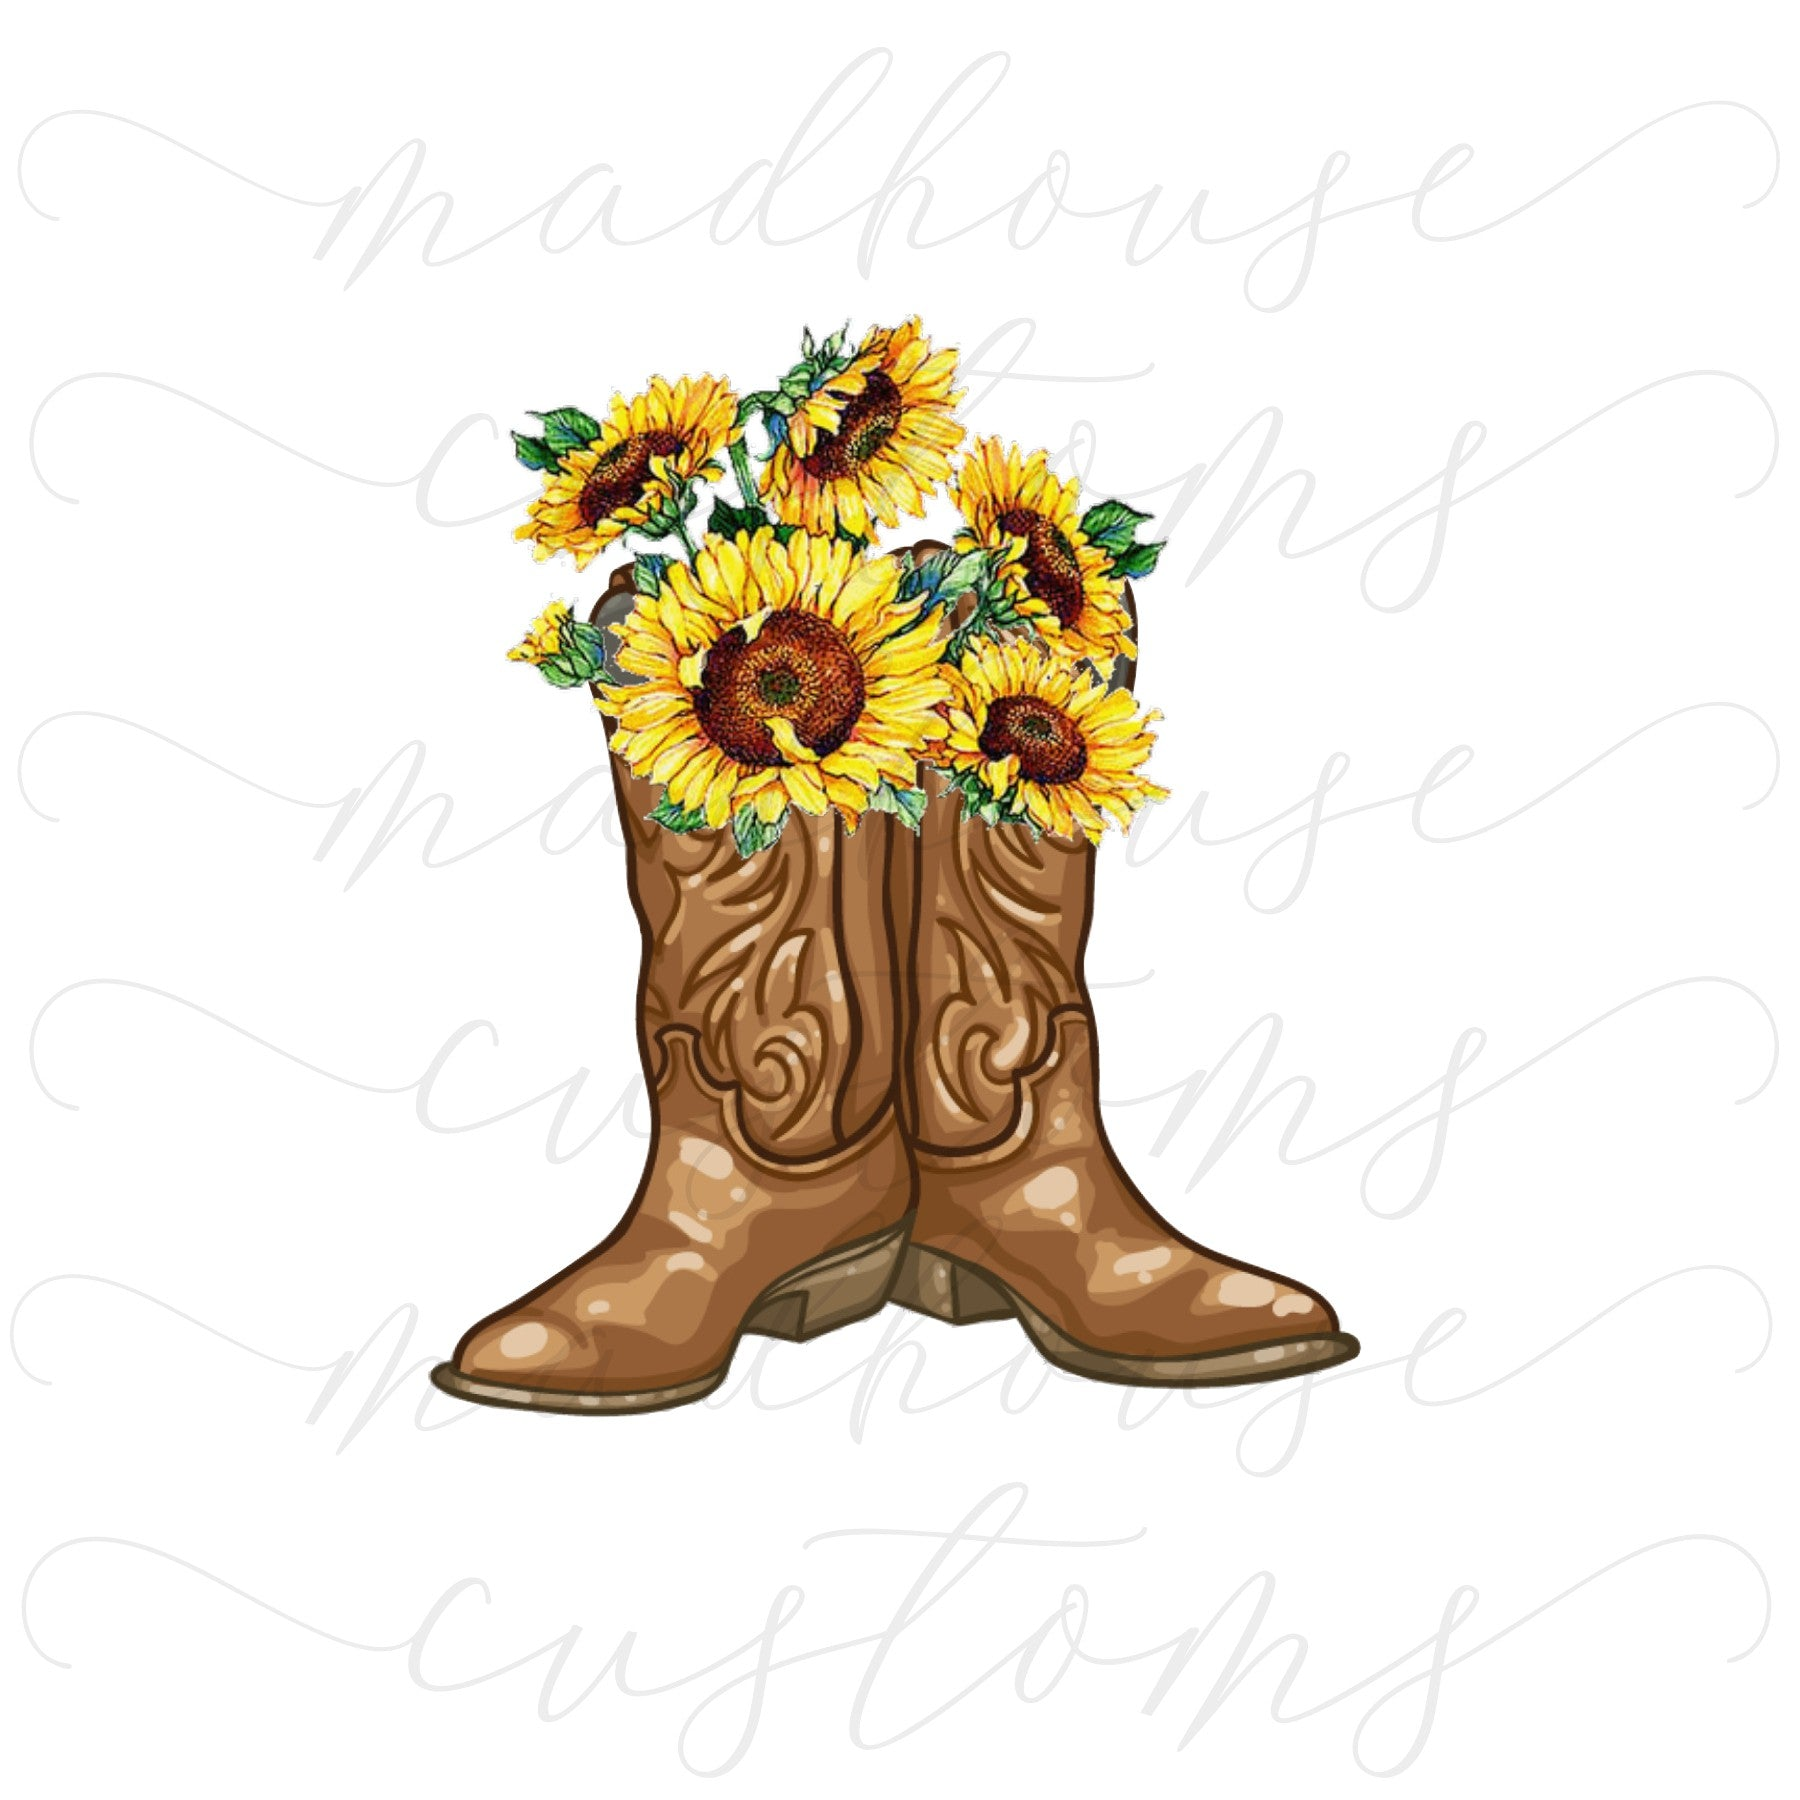 Boots & Sunflowers #3